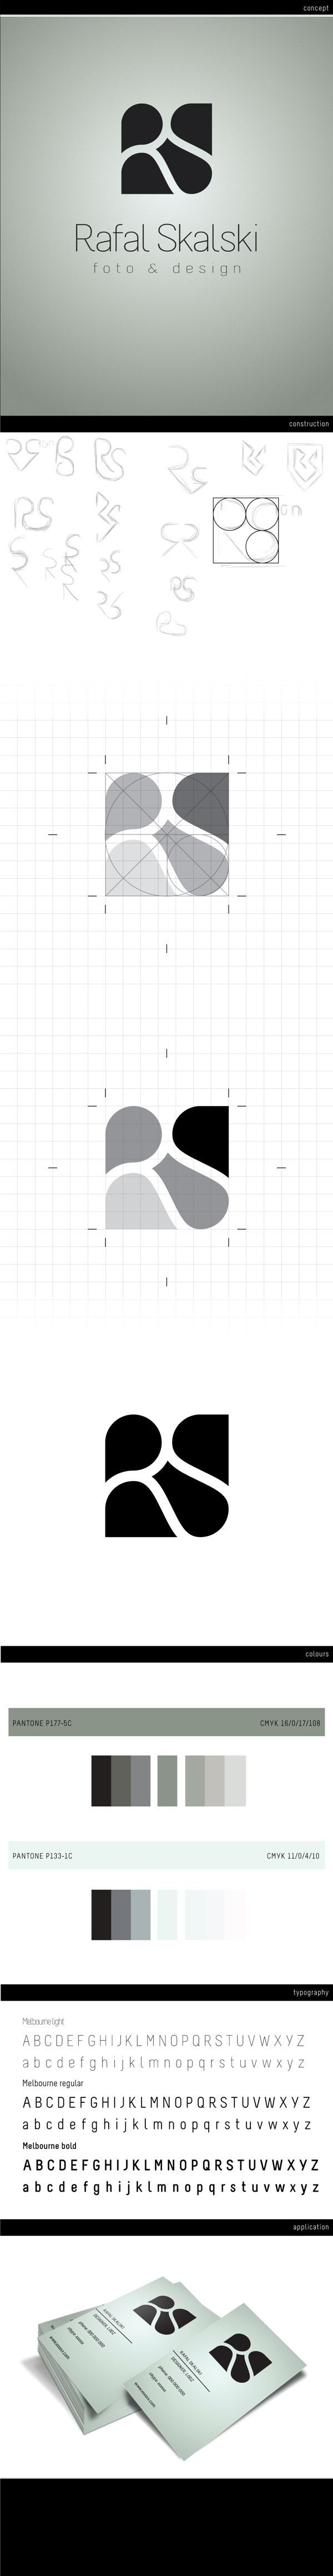 Rafal Skalski / logo / design / initials / white space / negative space / identity / sketches / process / steps to creating a logo. If you like UX, design, or design thinking, check out theuxblog.com